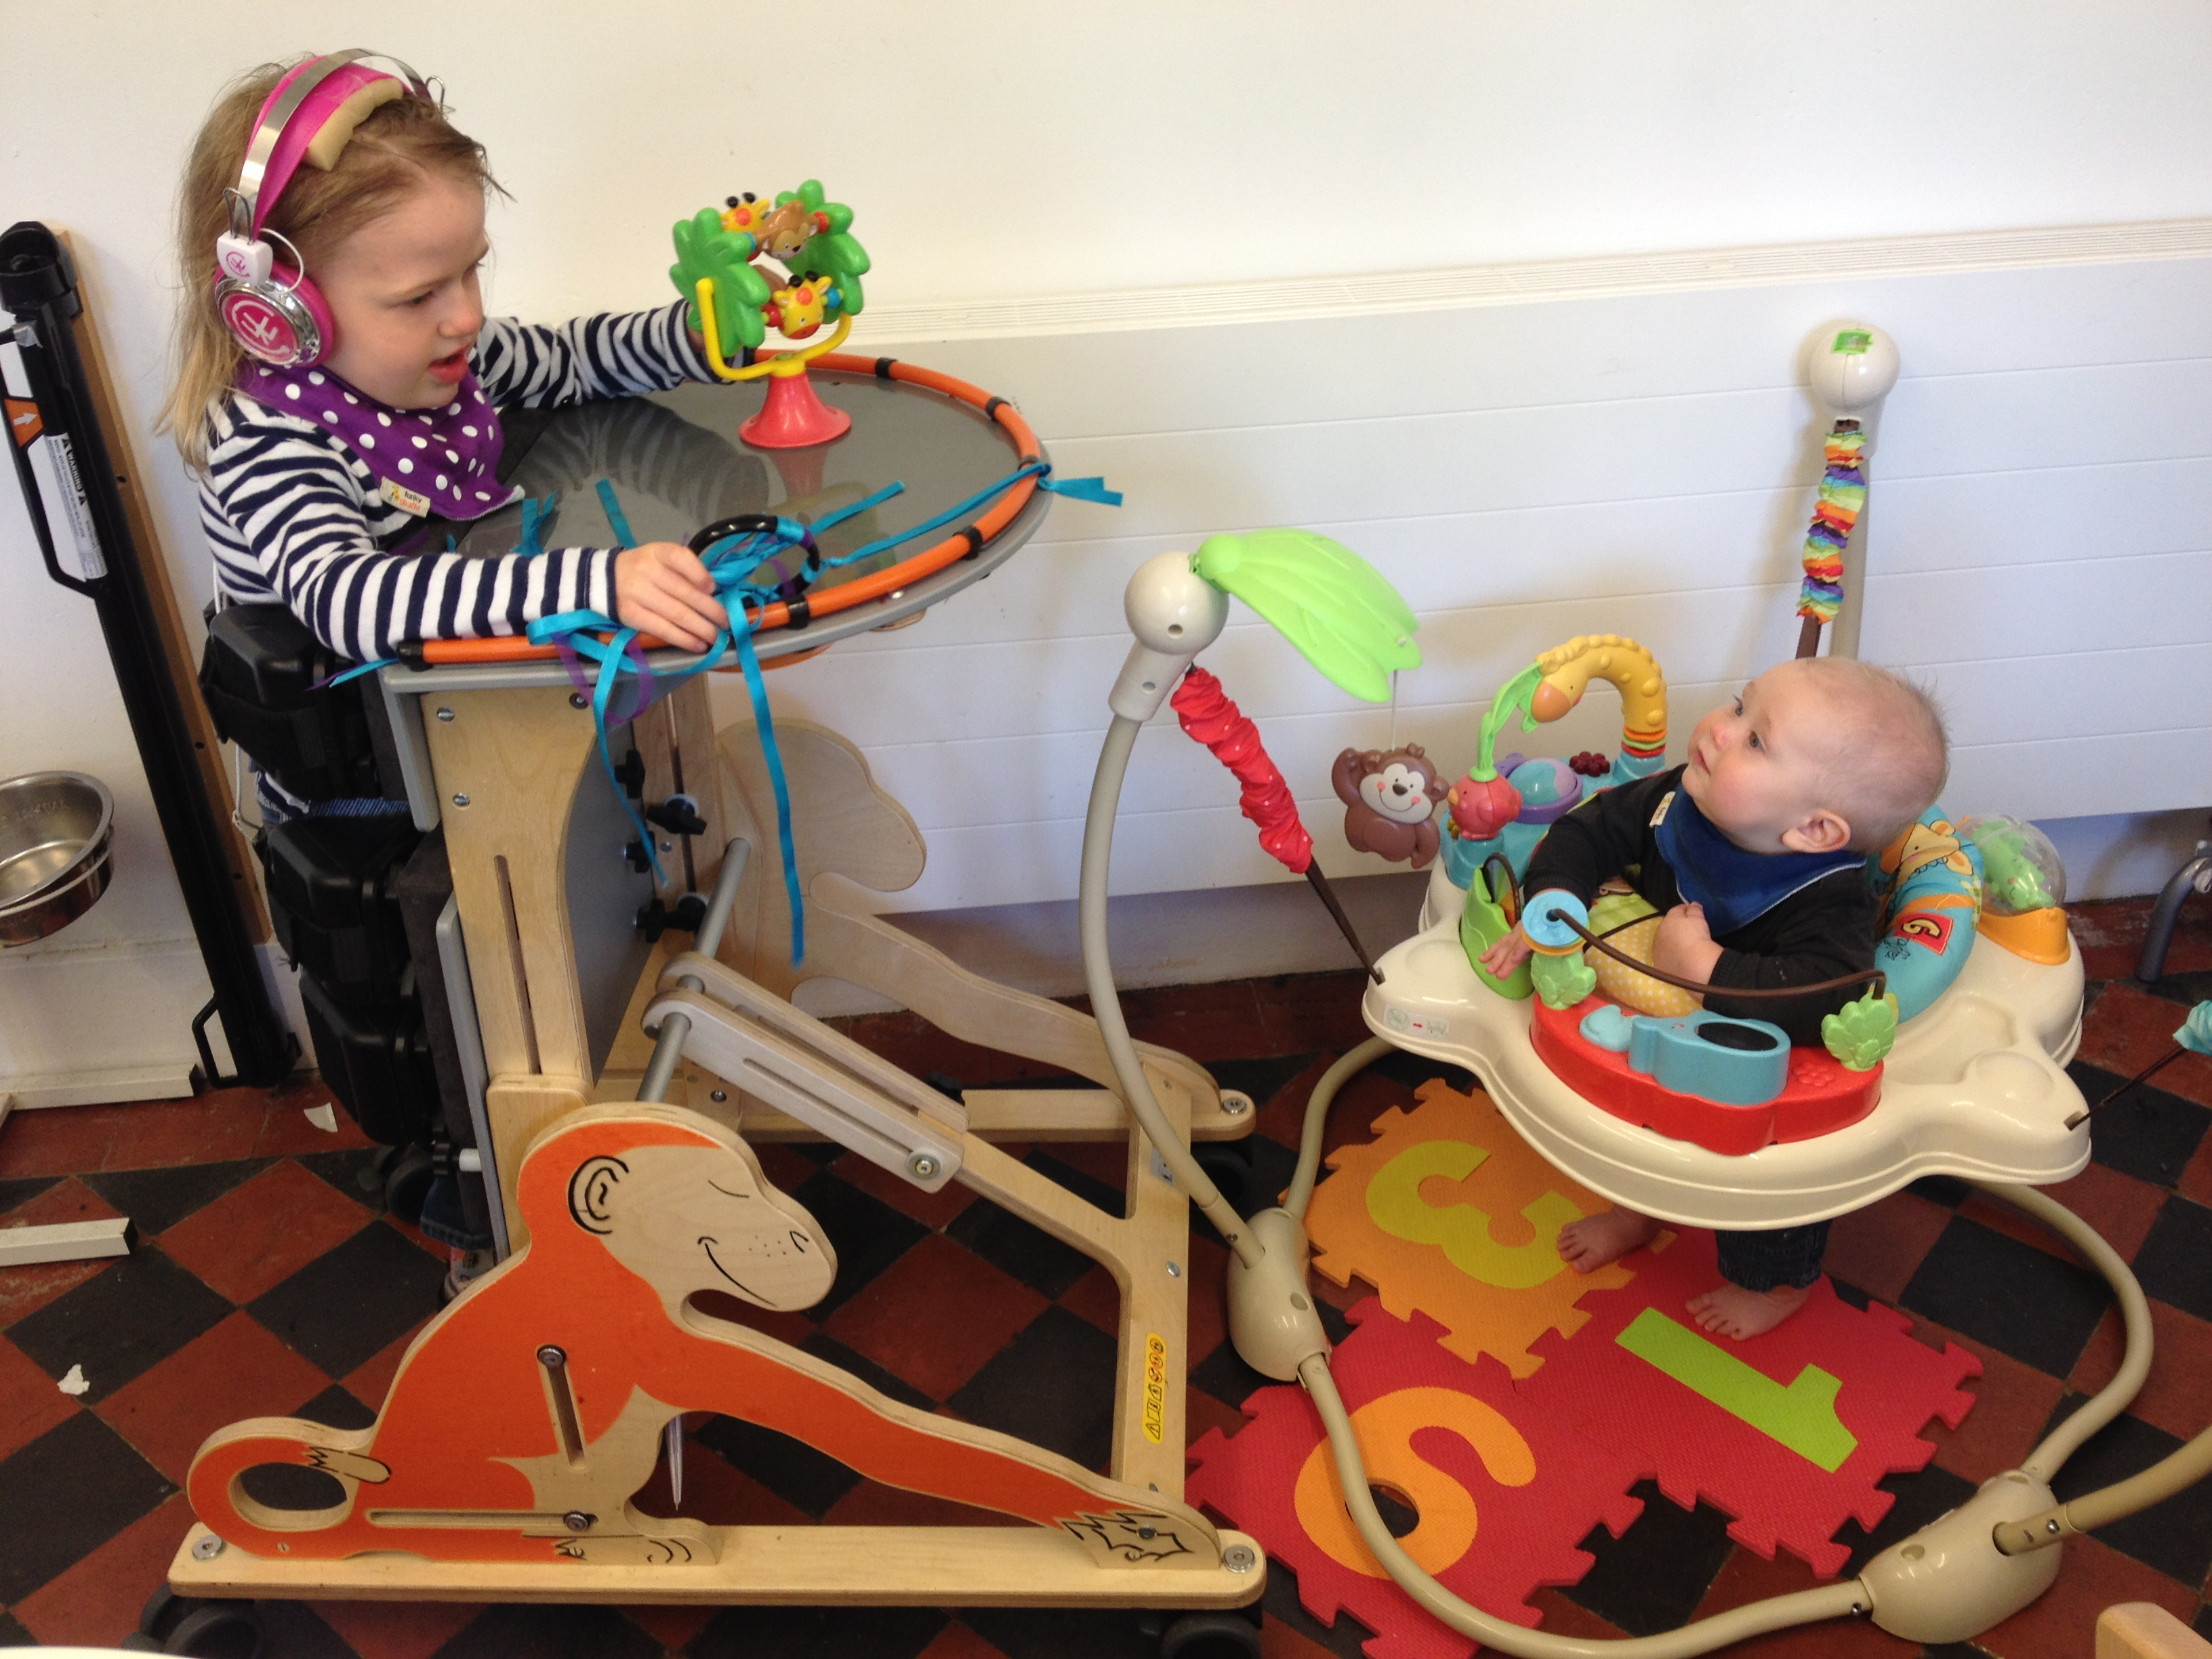 EJ in her standing frame facing her baby brother in a bouncer